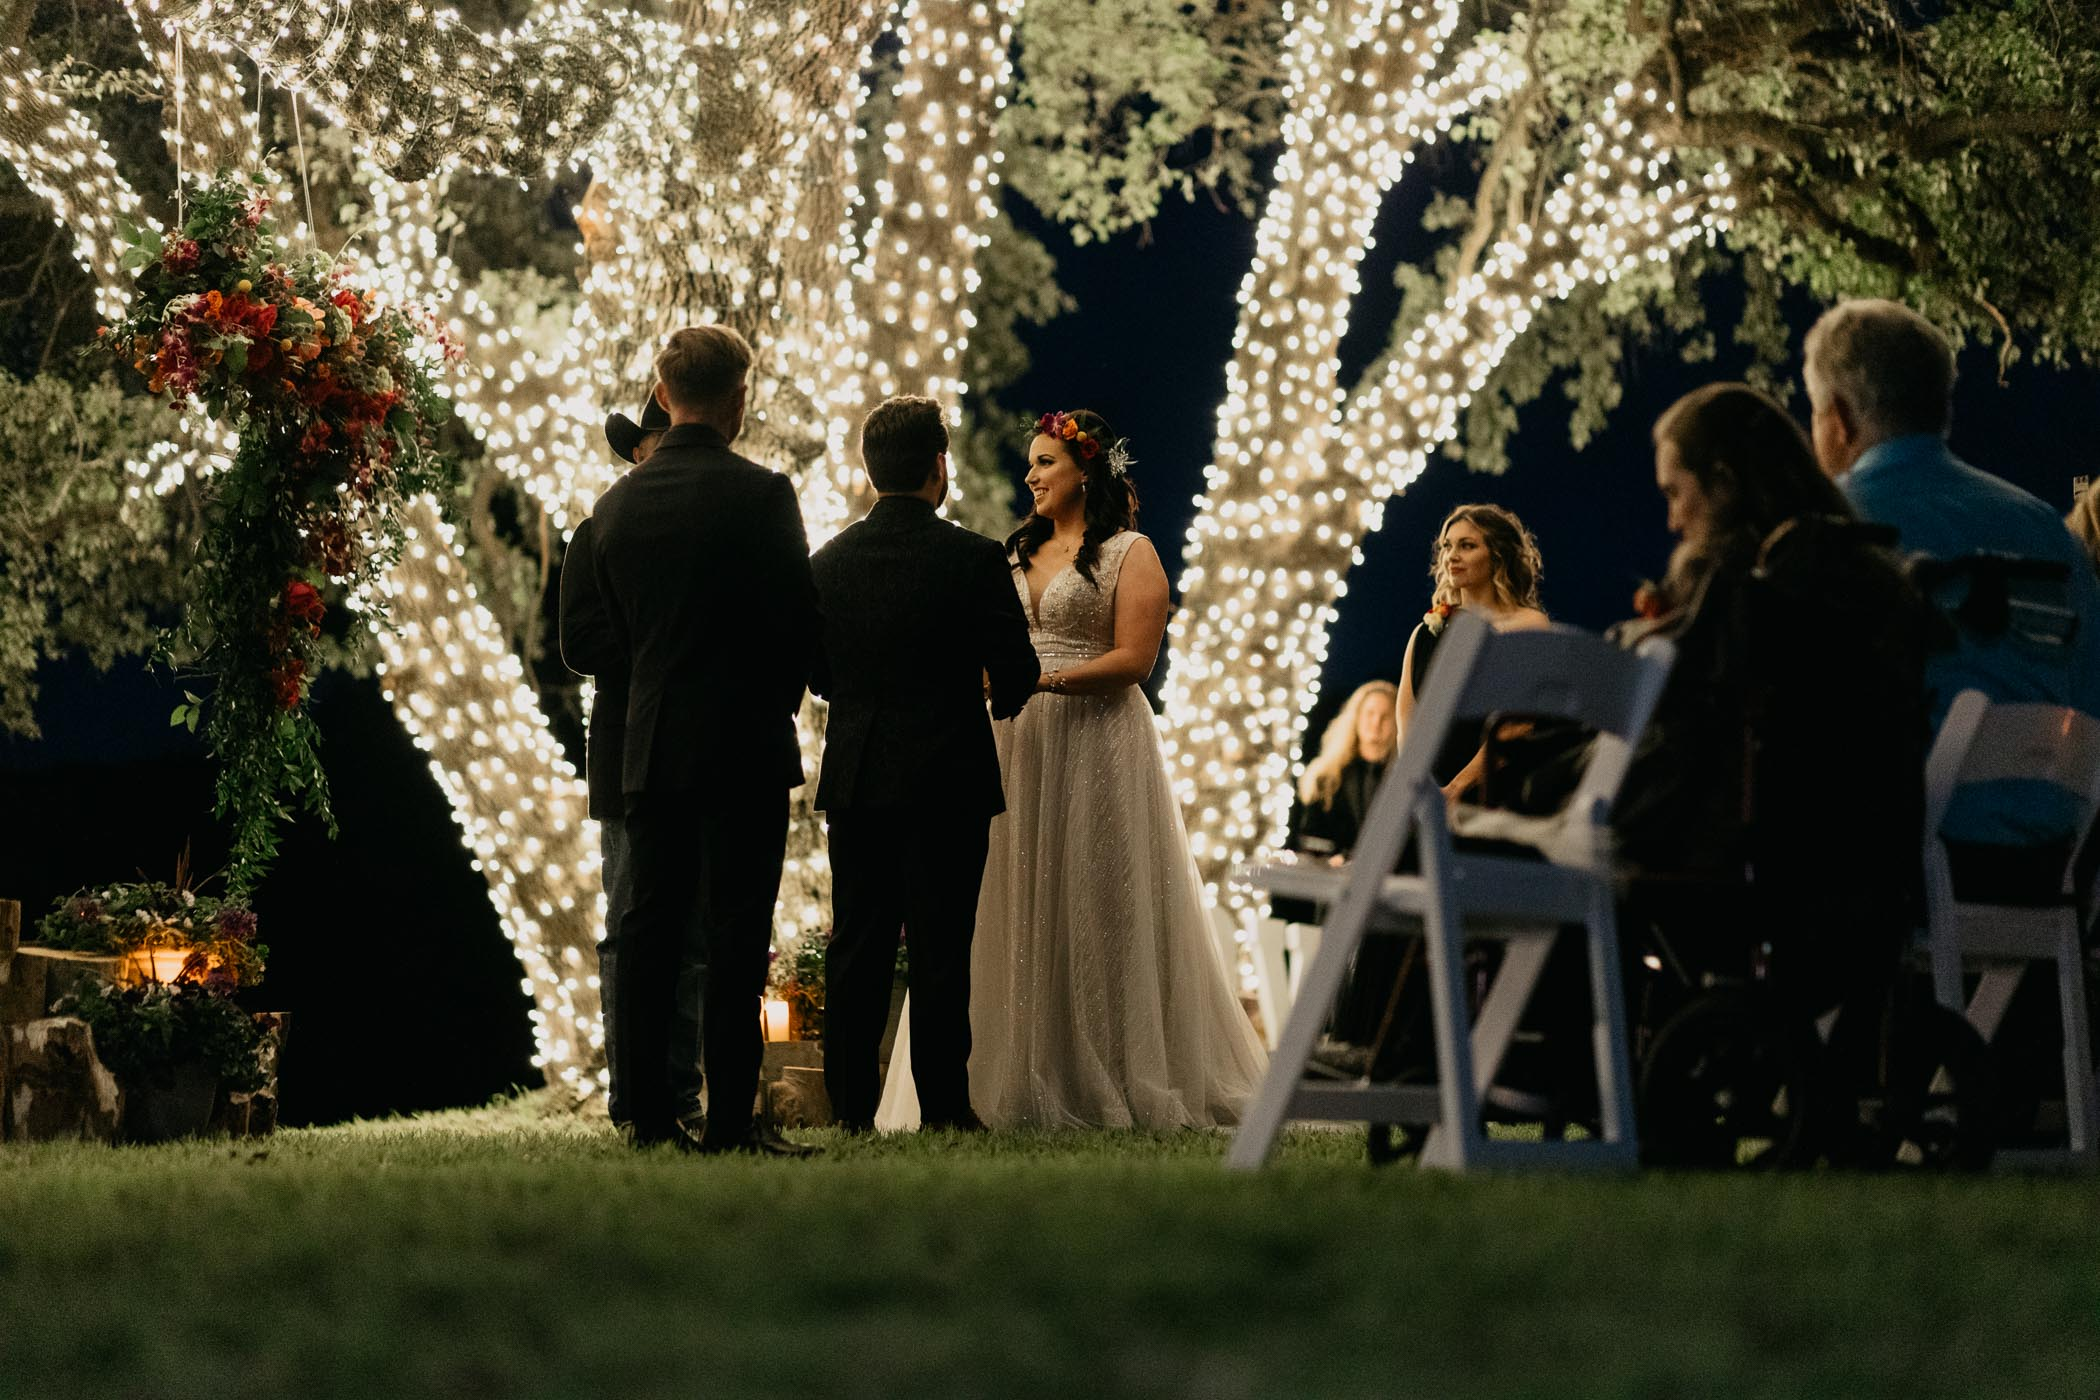 String lights lighting up wedding ceremony after dark